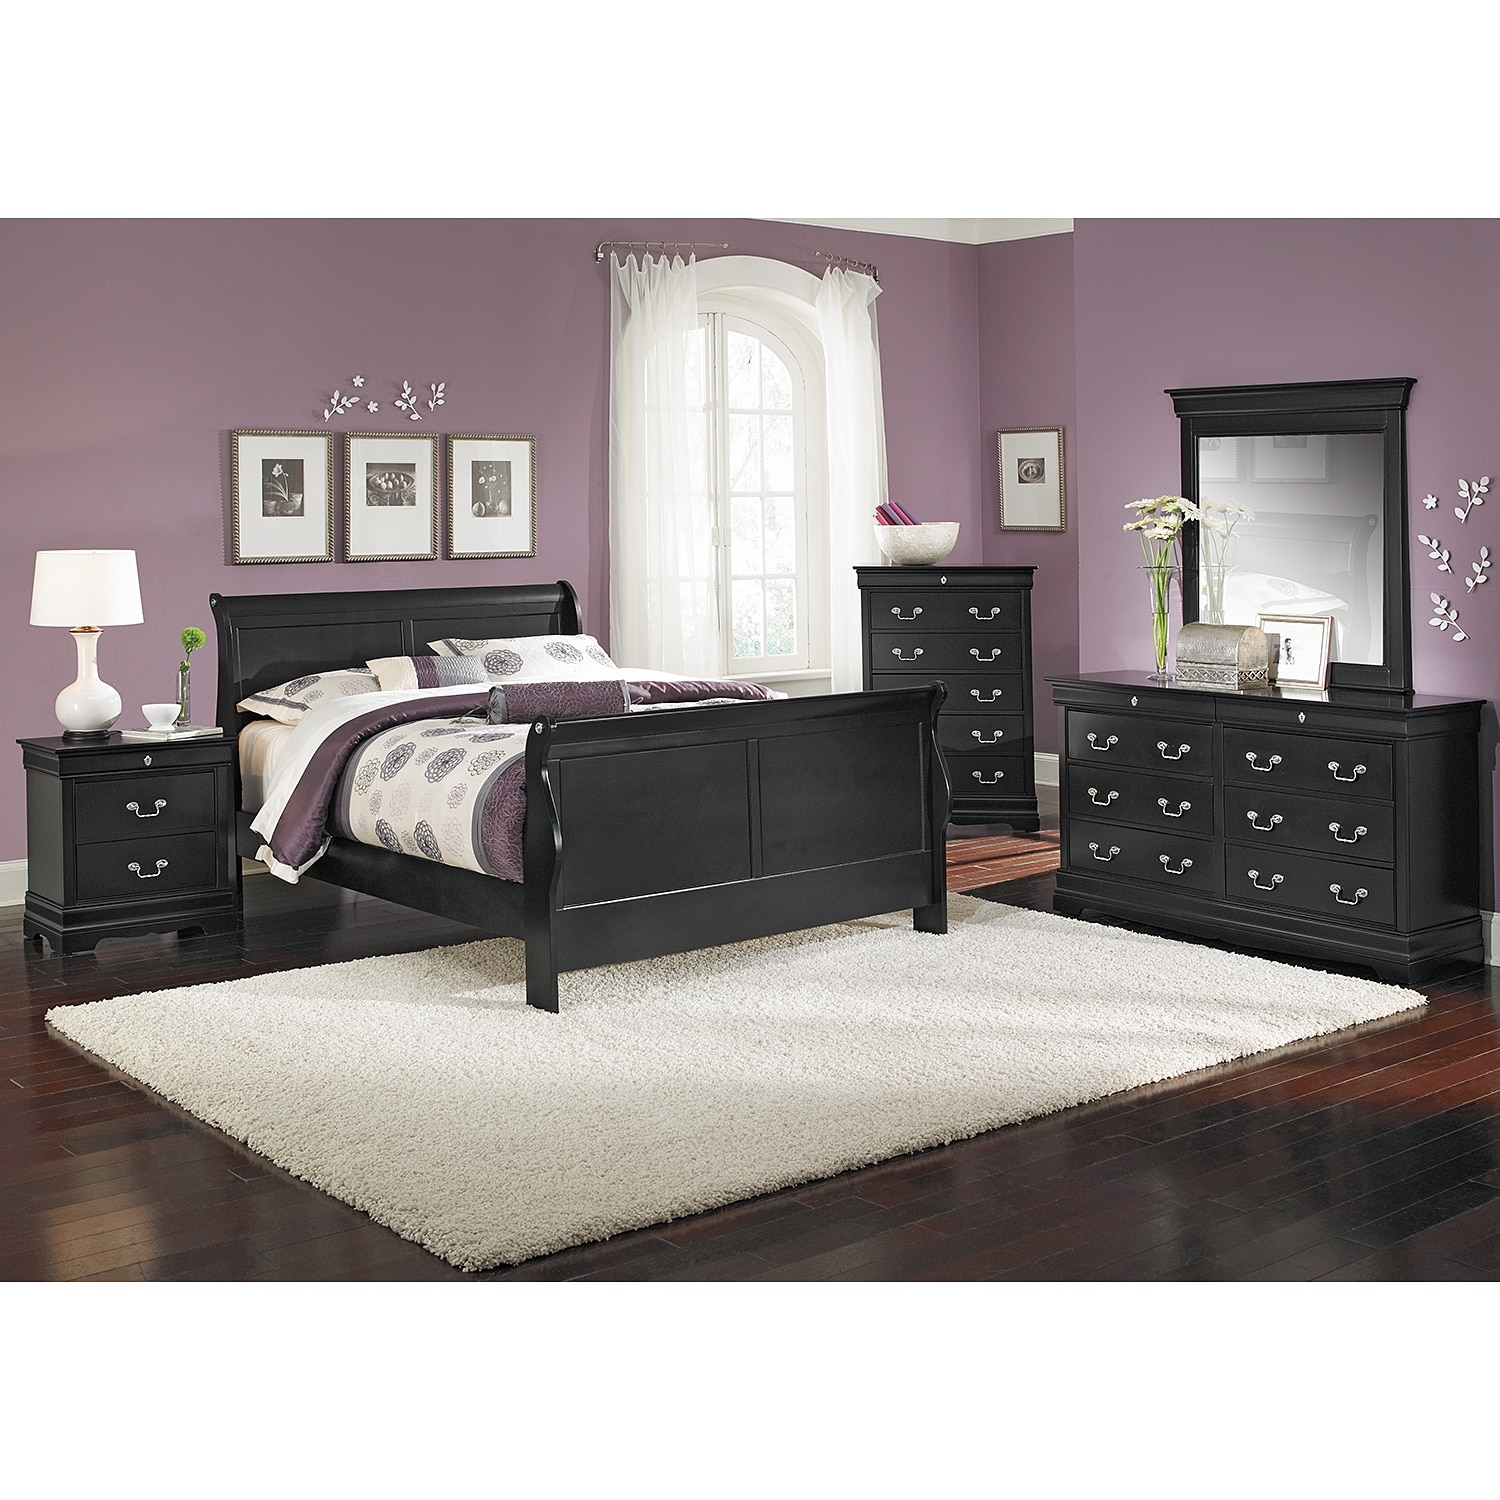 Neo Classic 7-Piece Queen Bedroom Set - Black